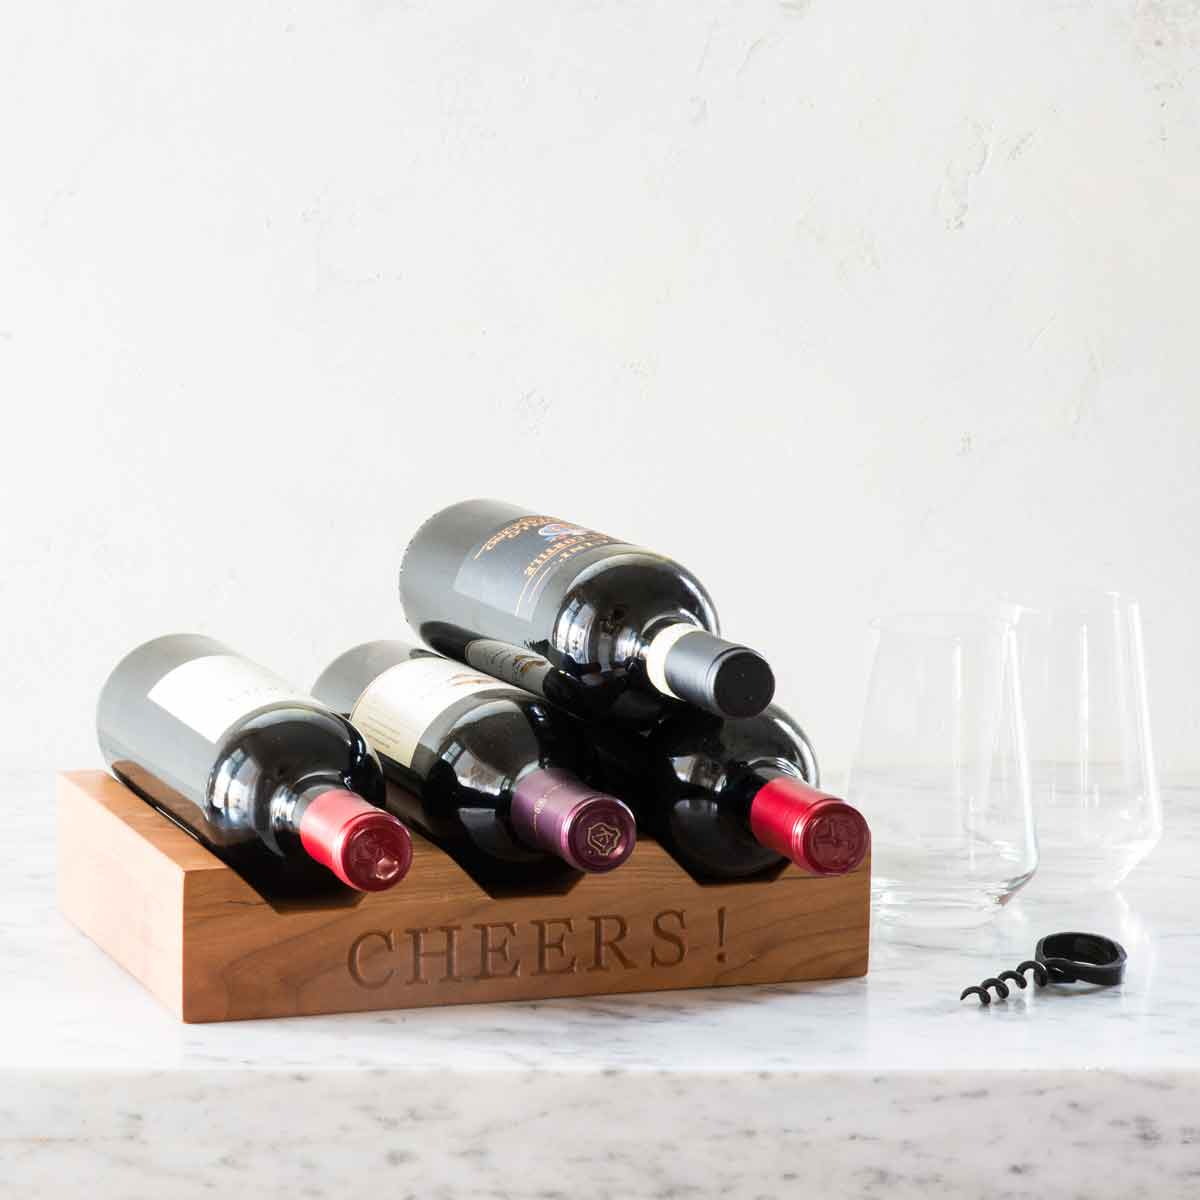 wood wine rack - Cheers! laser engraved in wood